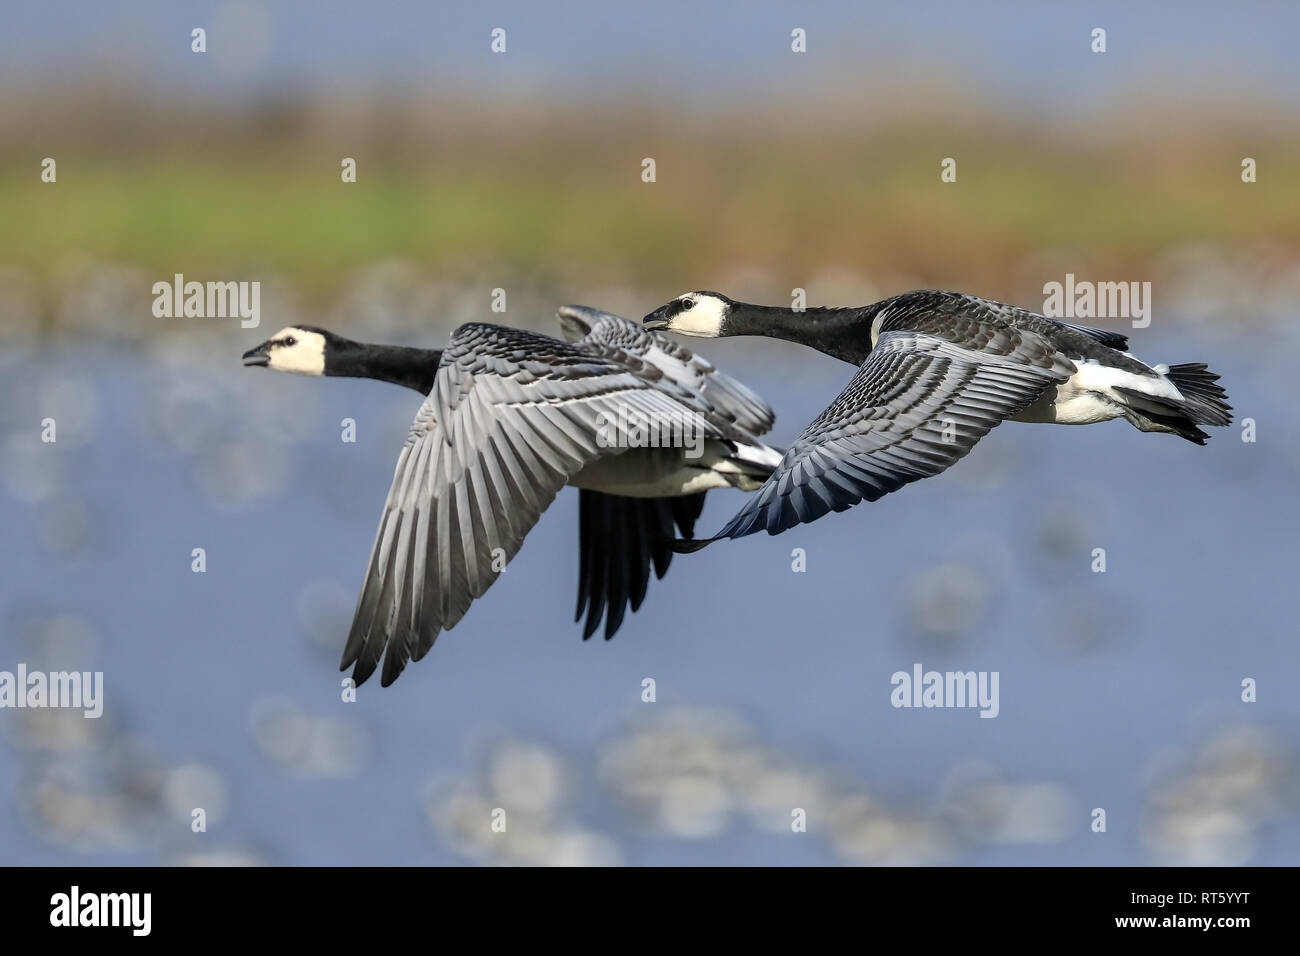 barnacle goose is migratory bird - Stock Image